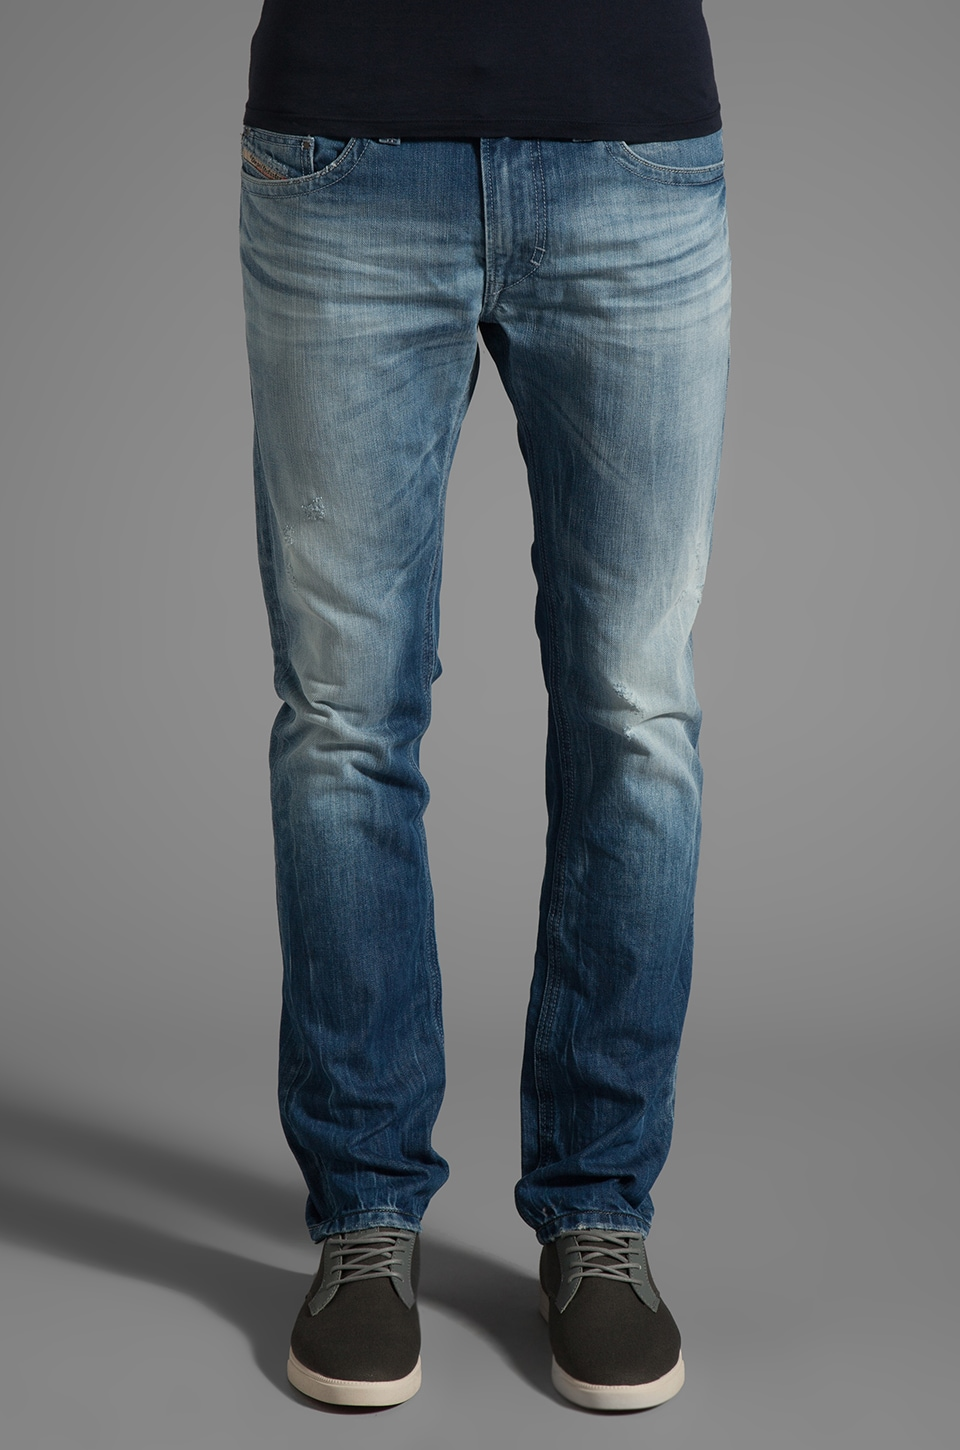 Diesel Thavar in Denim